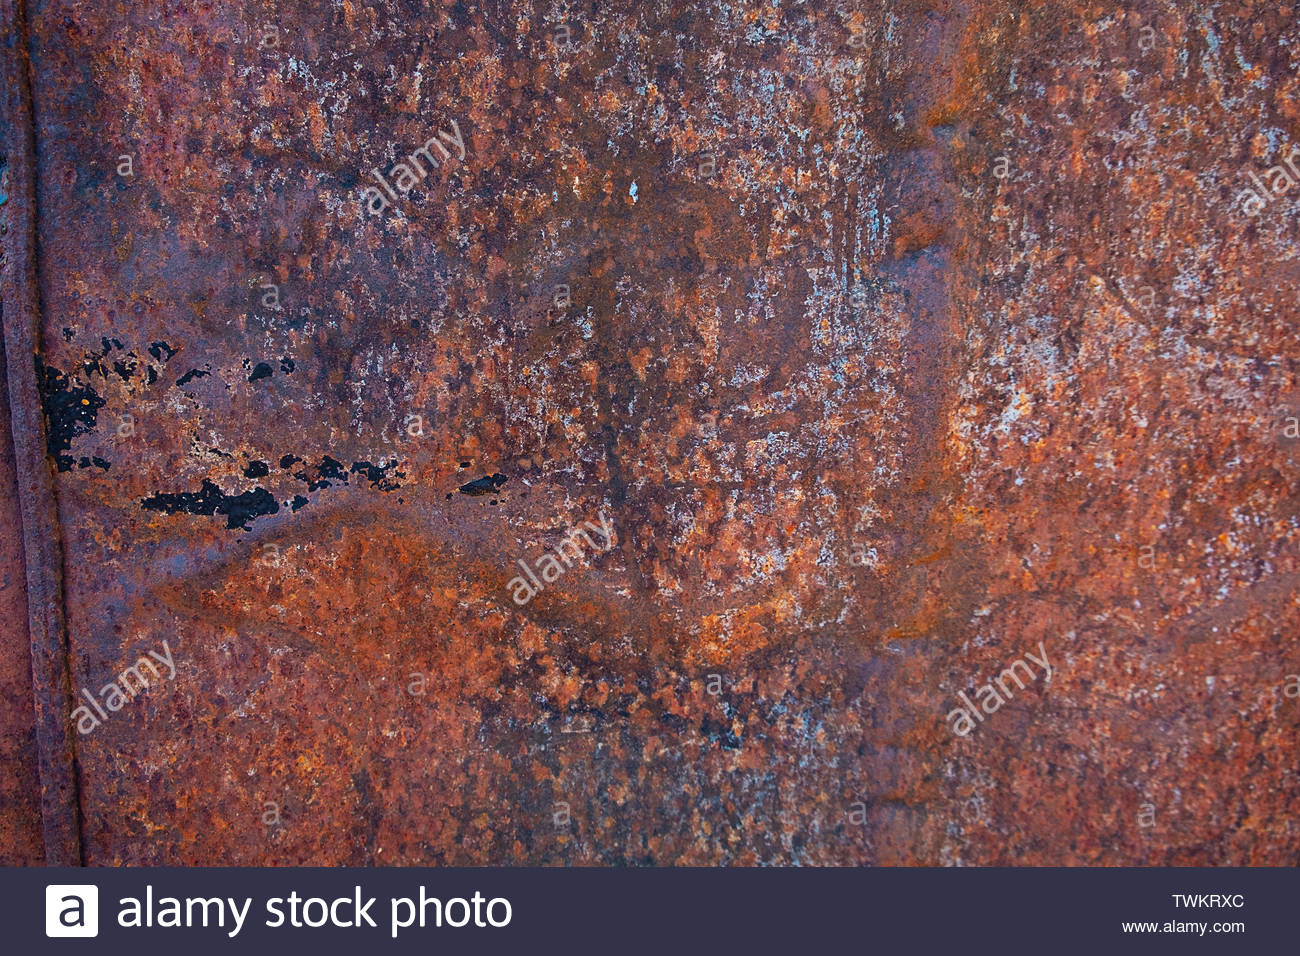 close up rust on surface of the old iron rusty metal steel metal sheet board abstract art background TWKRXC